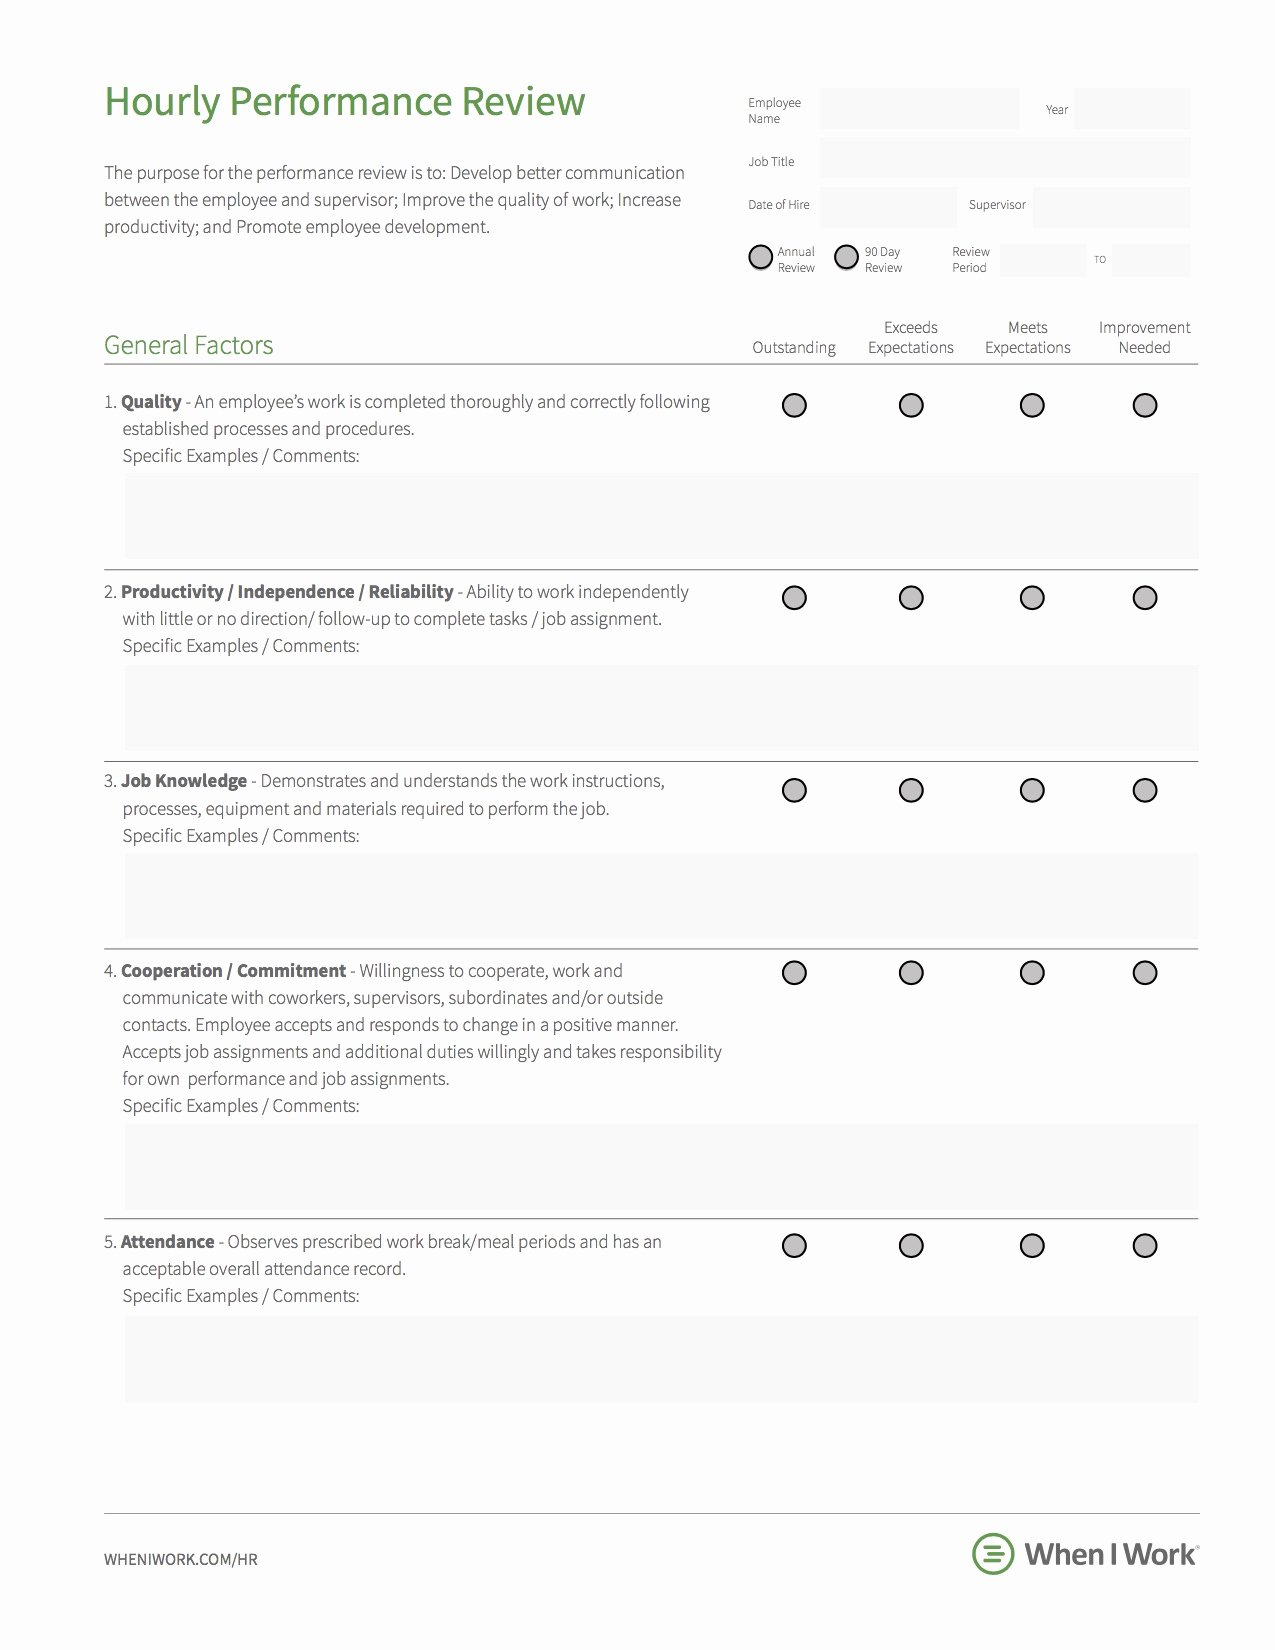 Employee Performance Review Template Luxury 7 Best Practices for An Effective Employee Performance